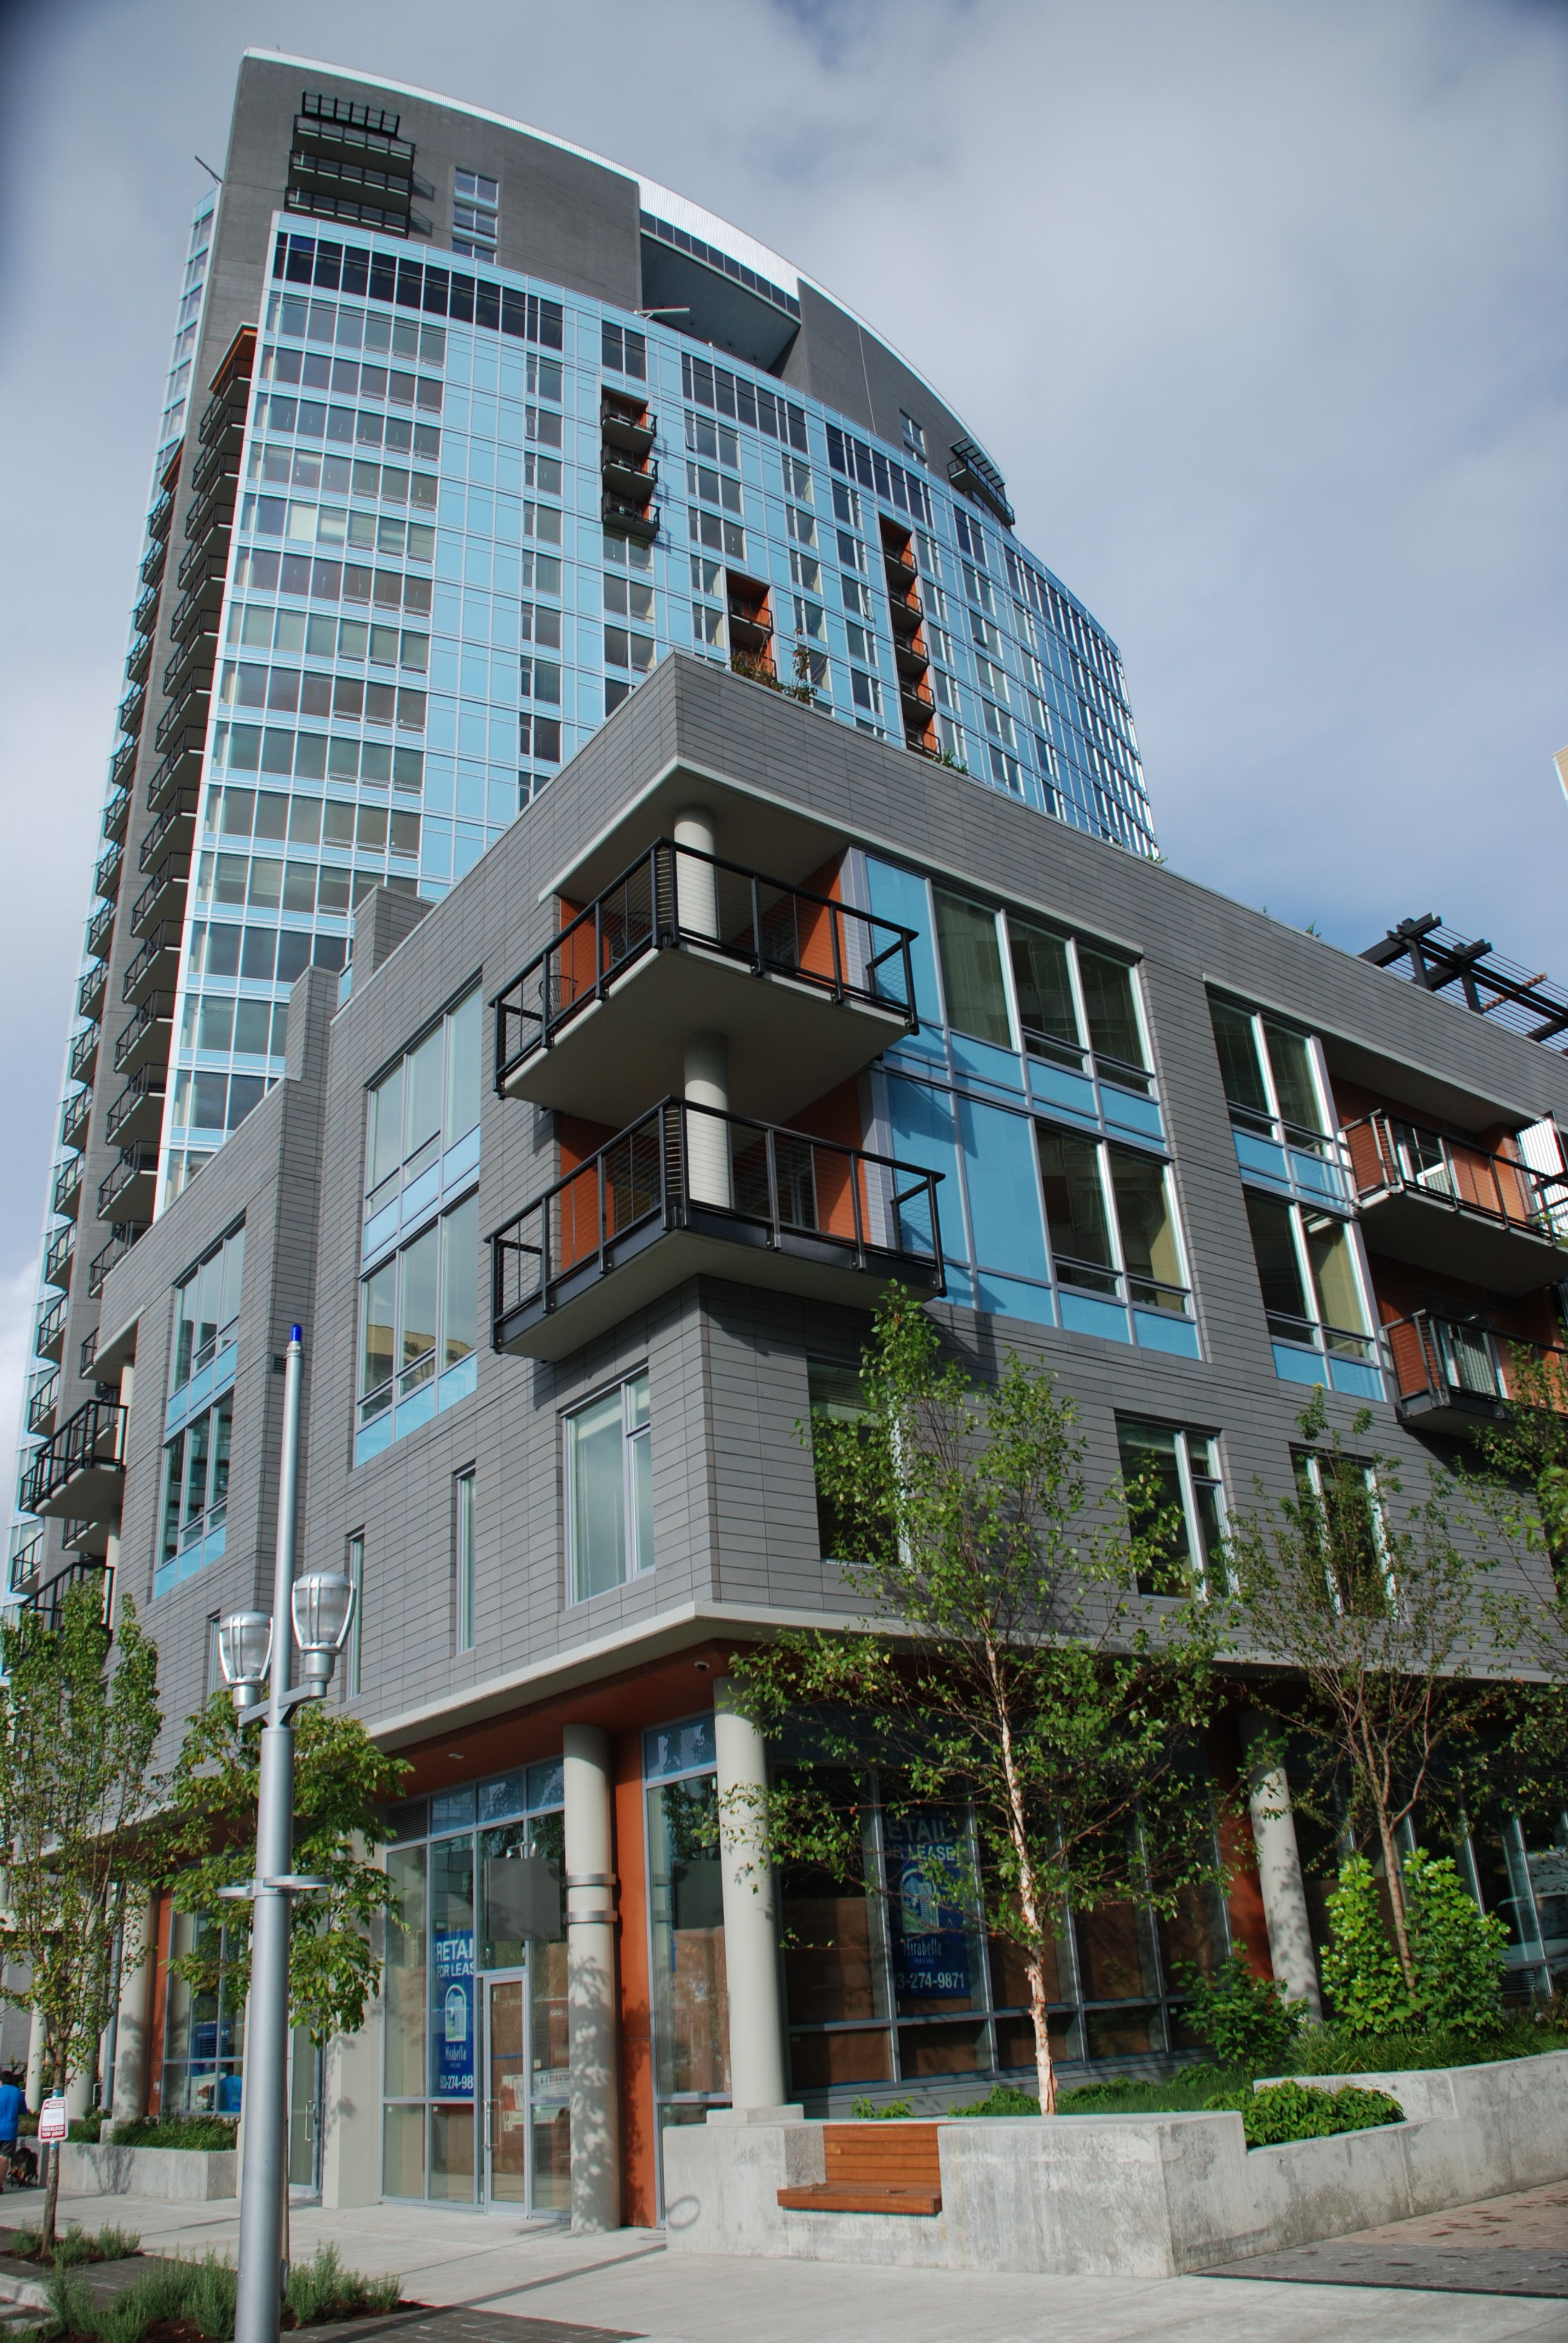 Mirabella Is A 32 Story High Rise Adult Living Project In Portland, OR. This